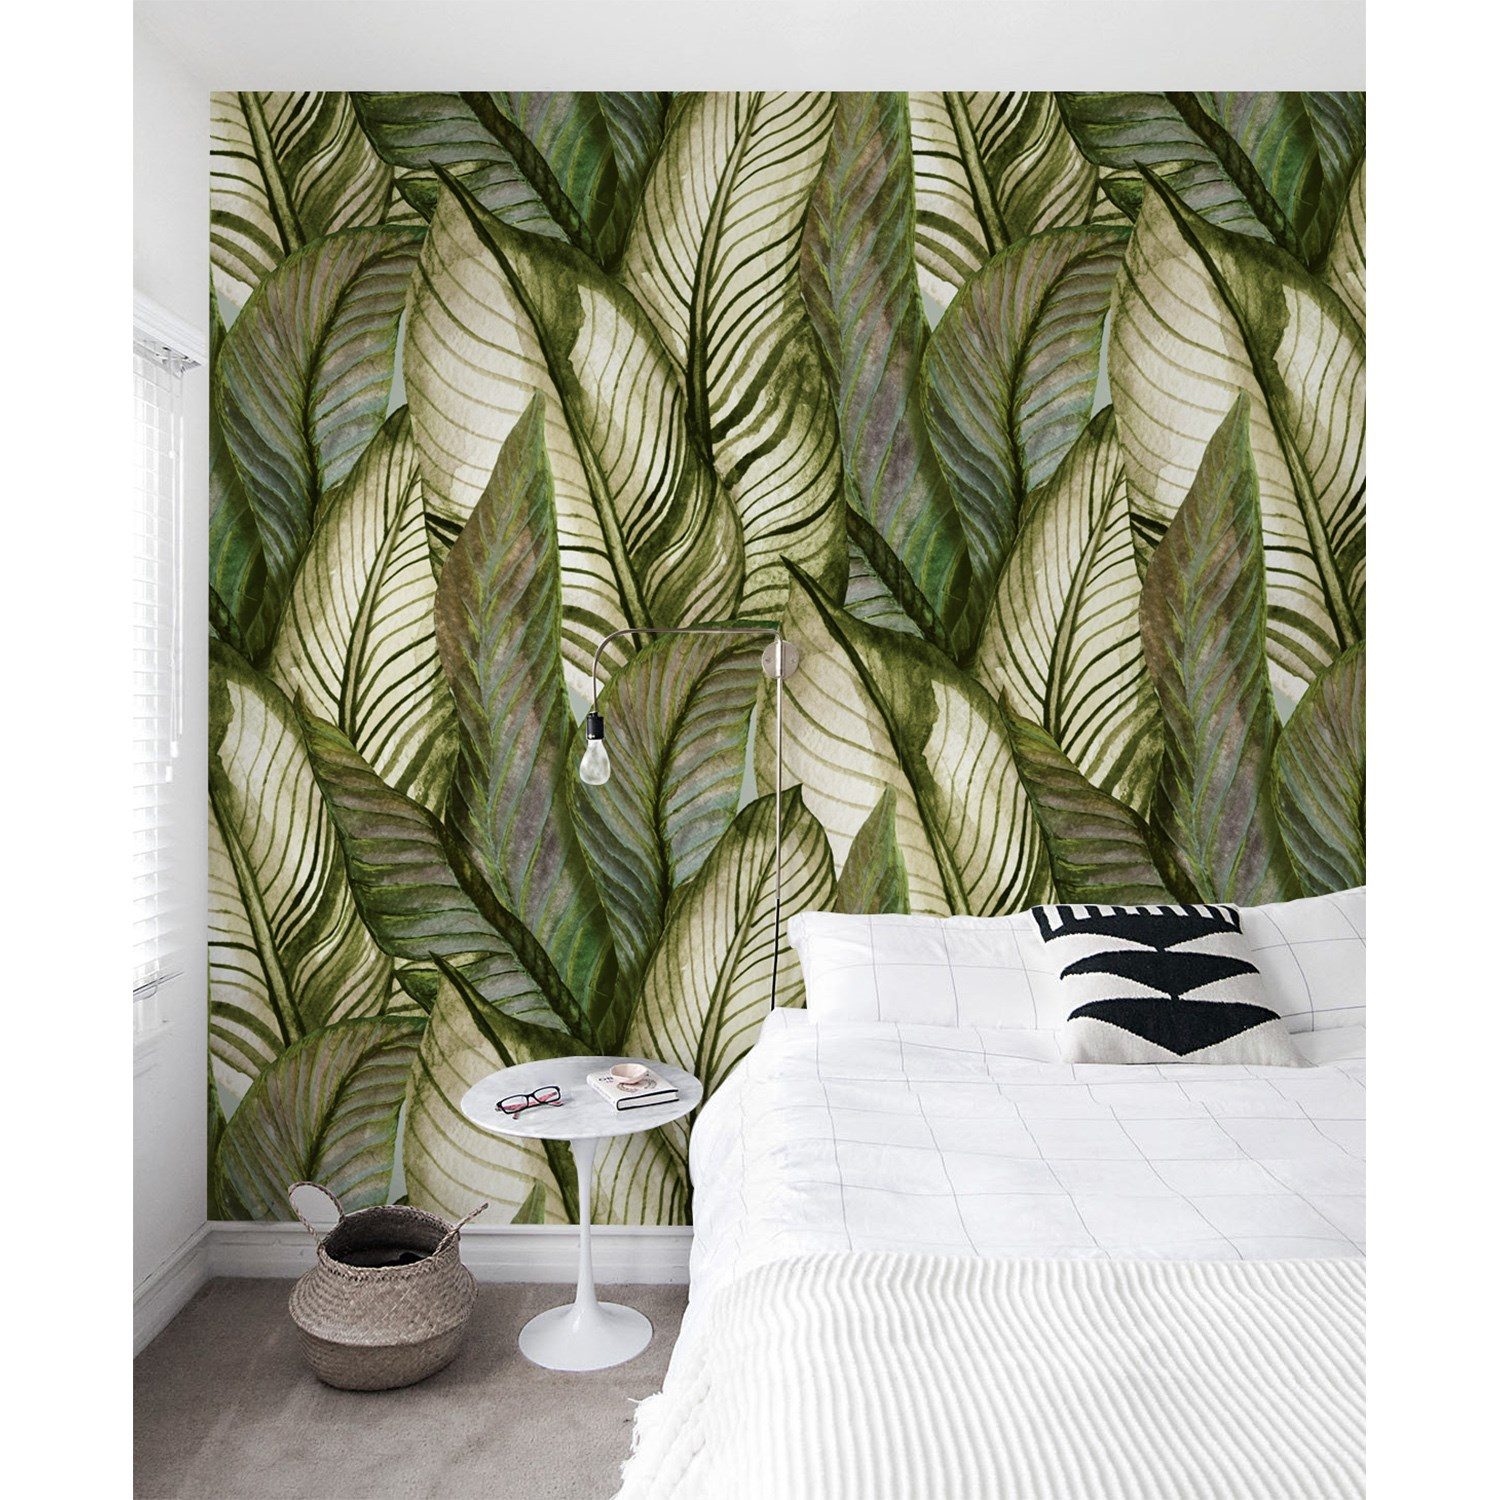 Green Palm Monstera Leaves Removable Wallpaper Floral Tropical Self Adhesive Ebay